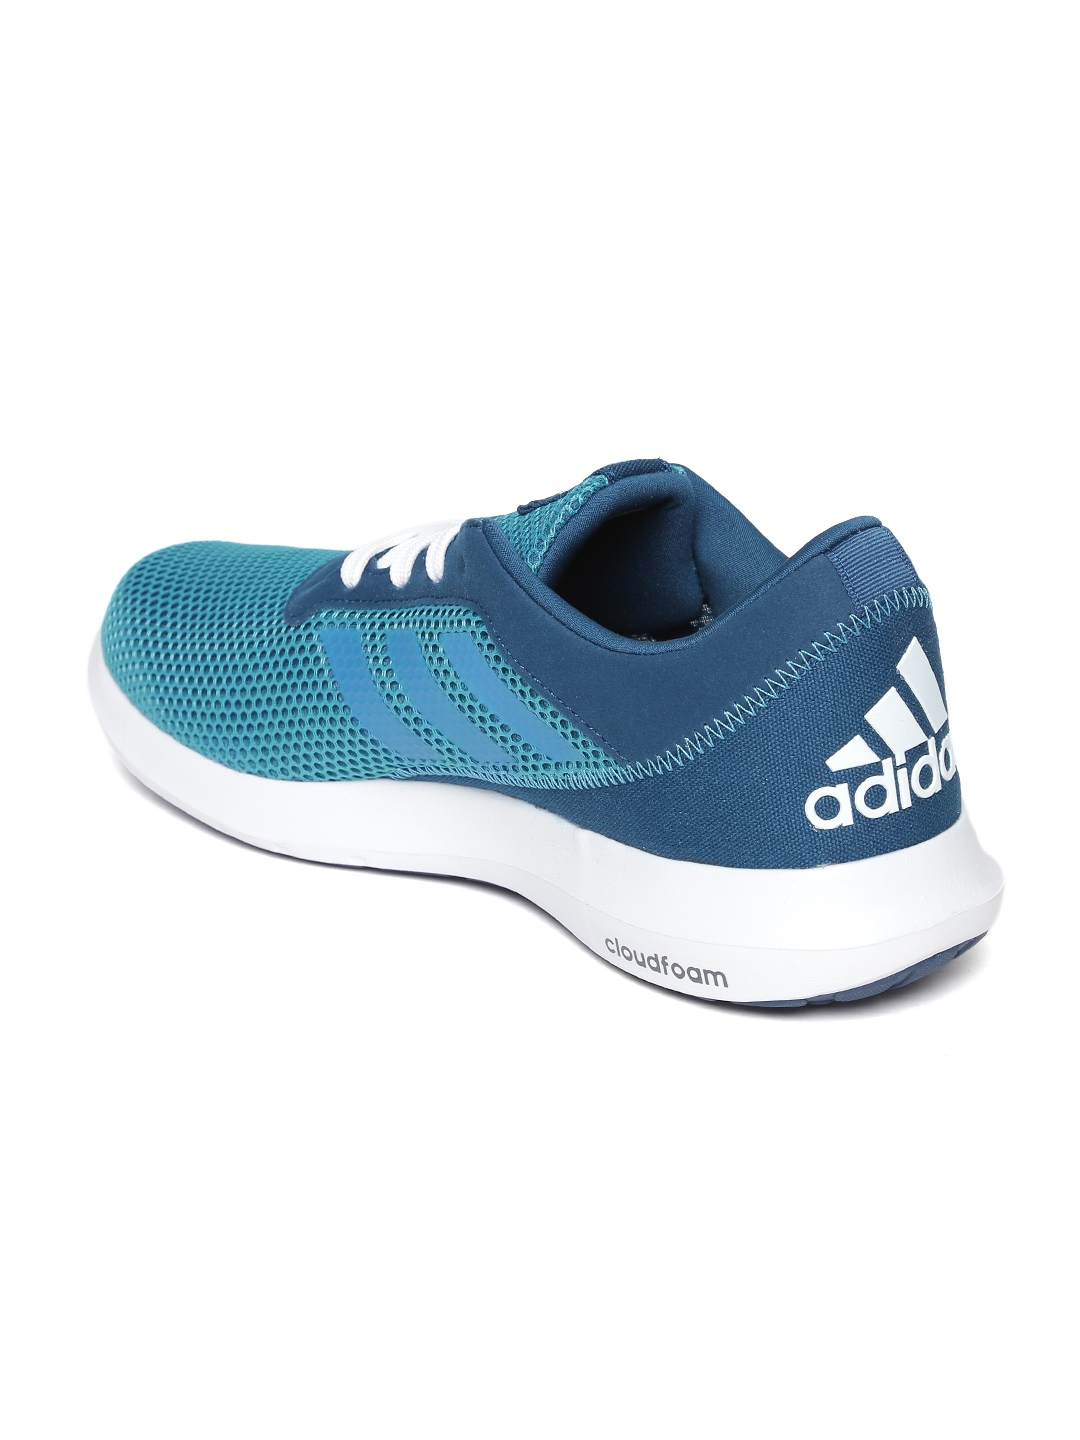 47c5fae3e52 Buy ADIDAS Men Teal Blue Element Refresh 3 Running Shoes - Sports ...